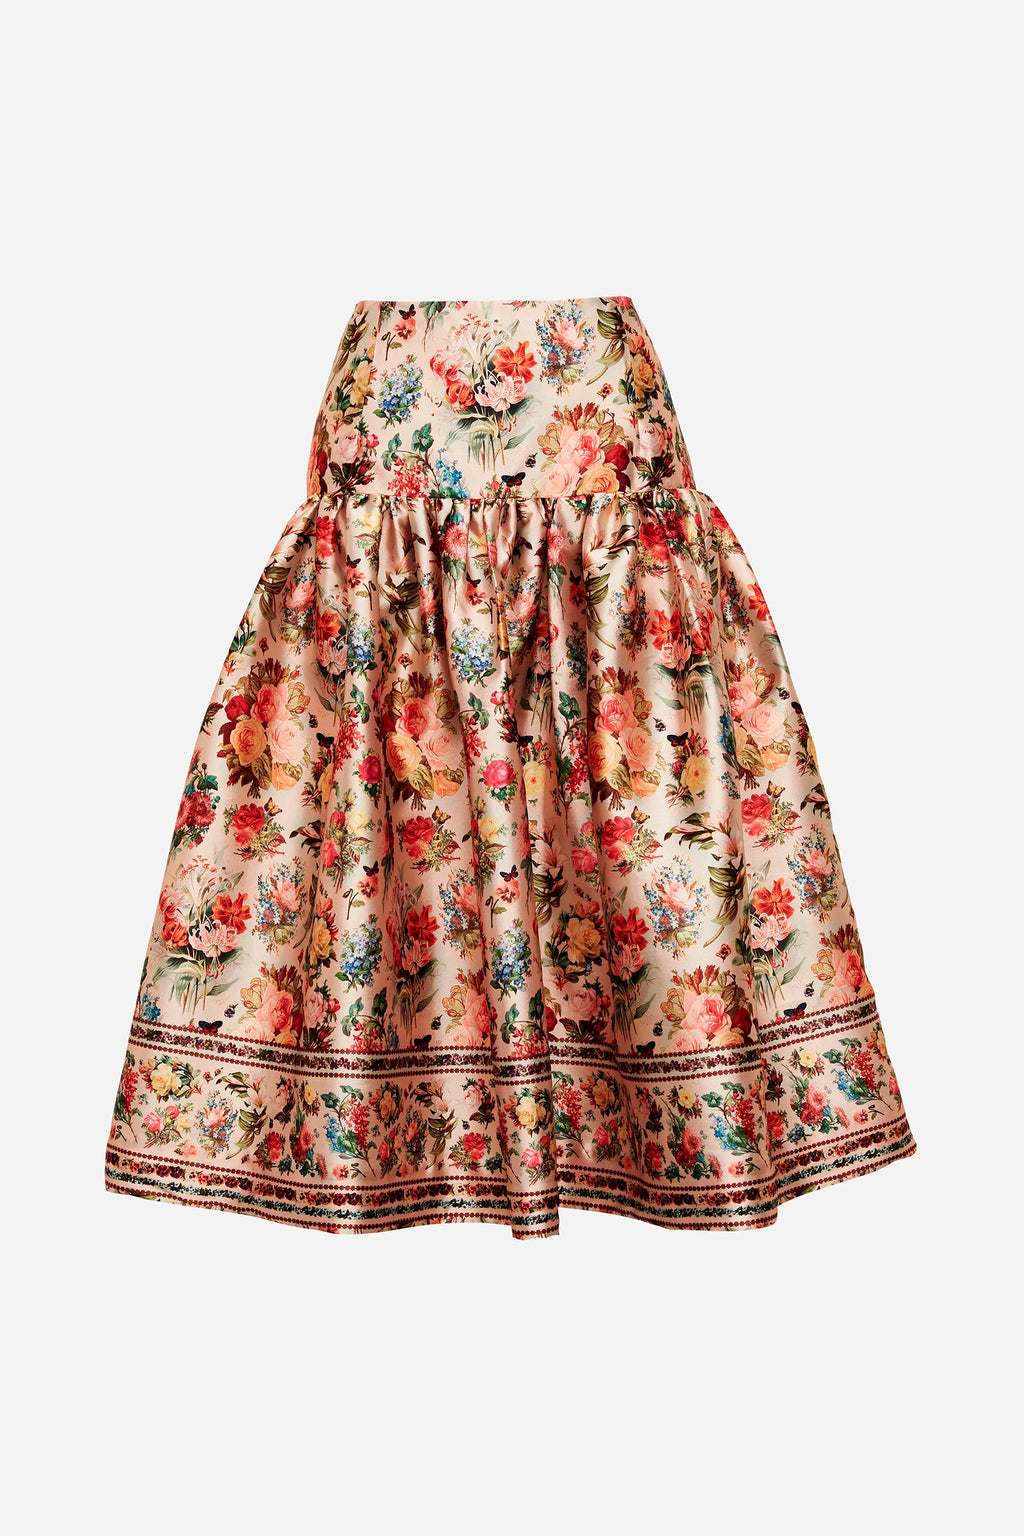 FOXWORTH HALL TIER SKIRT